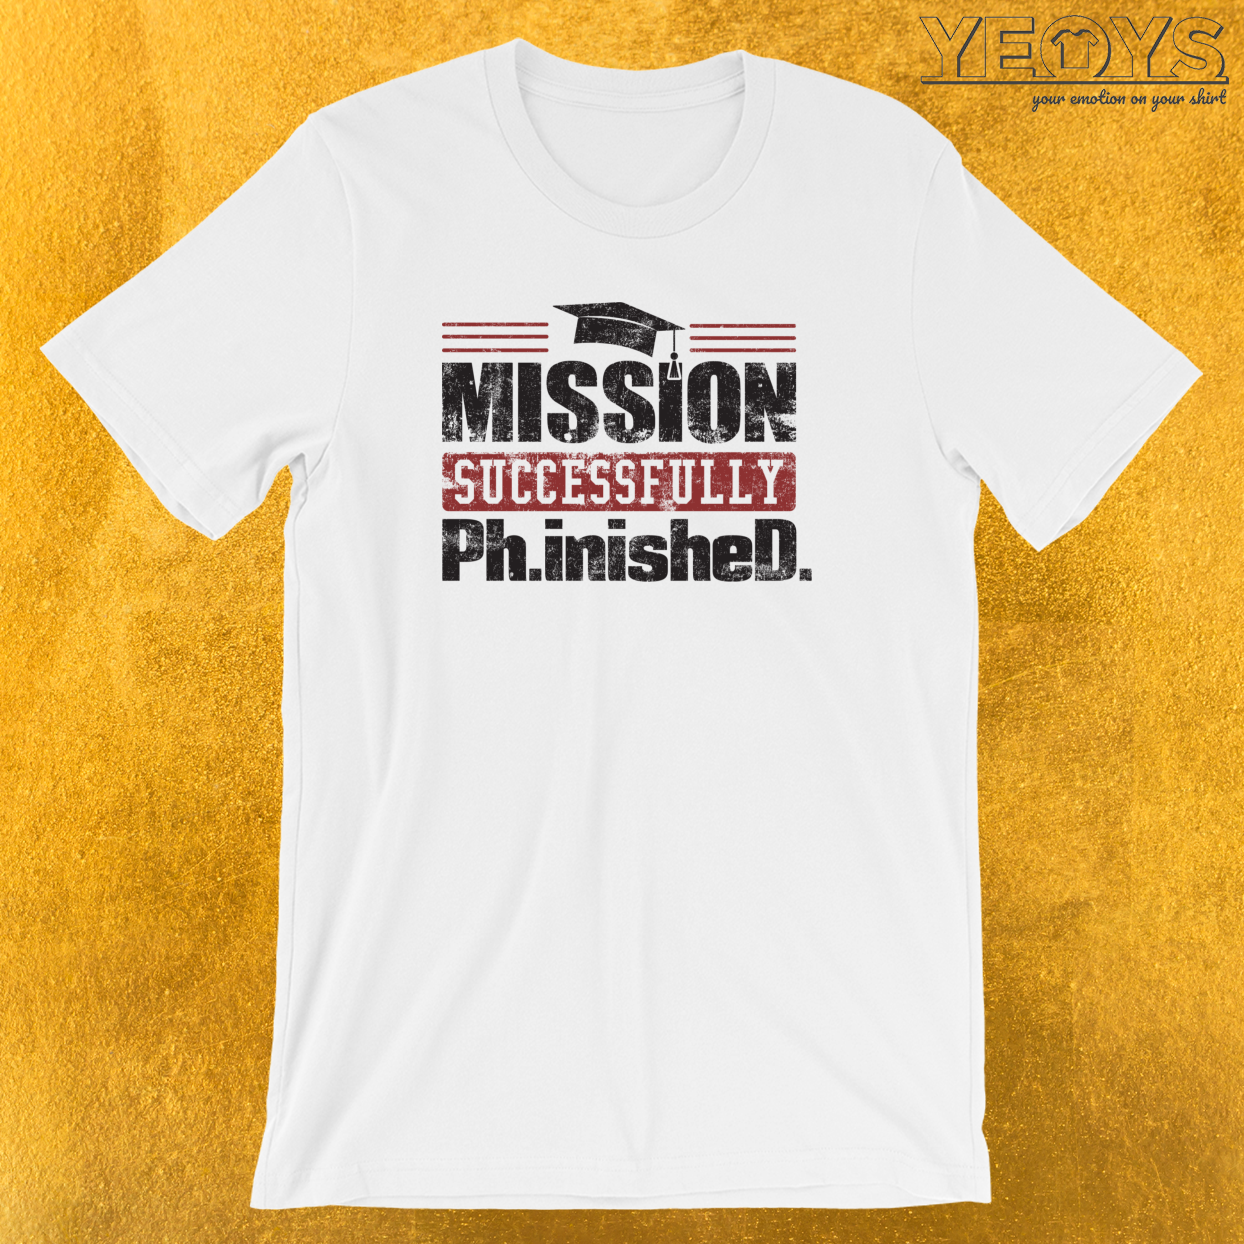 Mission Succsessfully Finished T Shirt Graduation Quotes Amazing Mission Succsessfully Finished Clothing With Distressed Hat Shirts T Shirt Love T Shirt